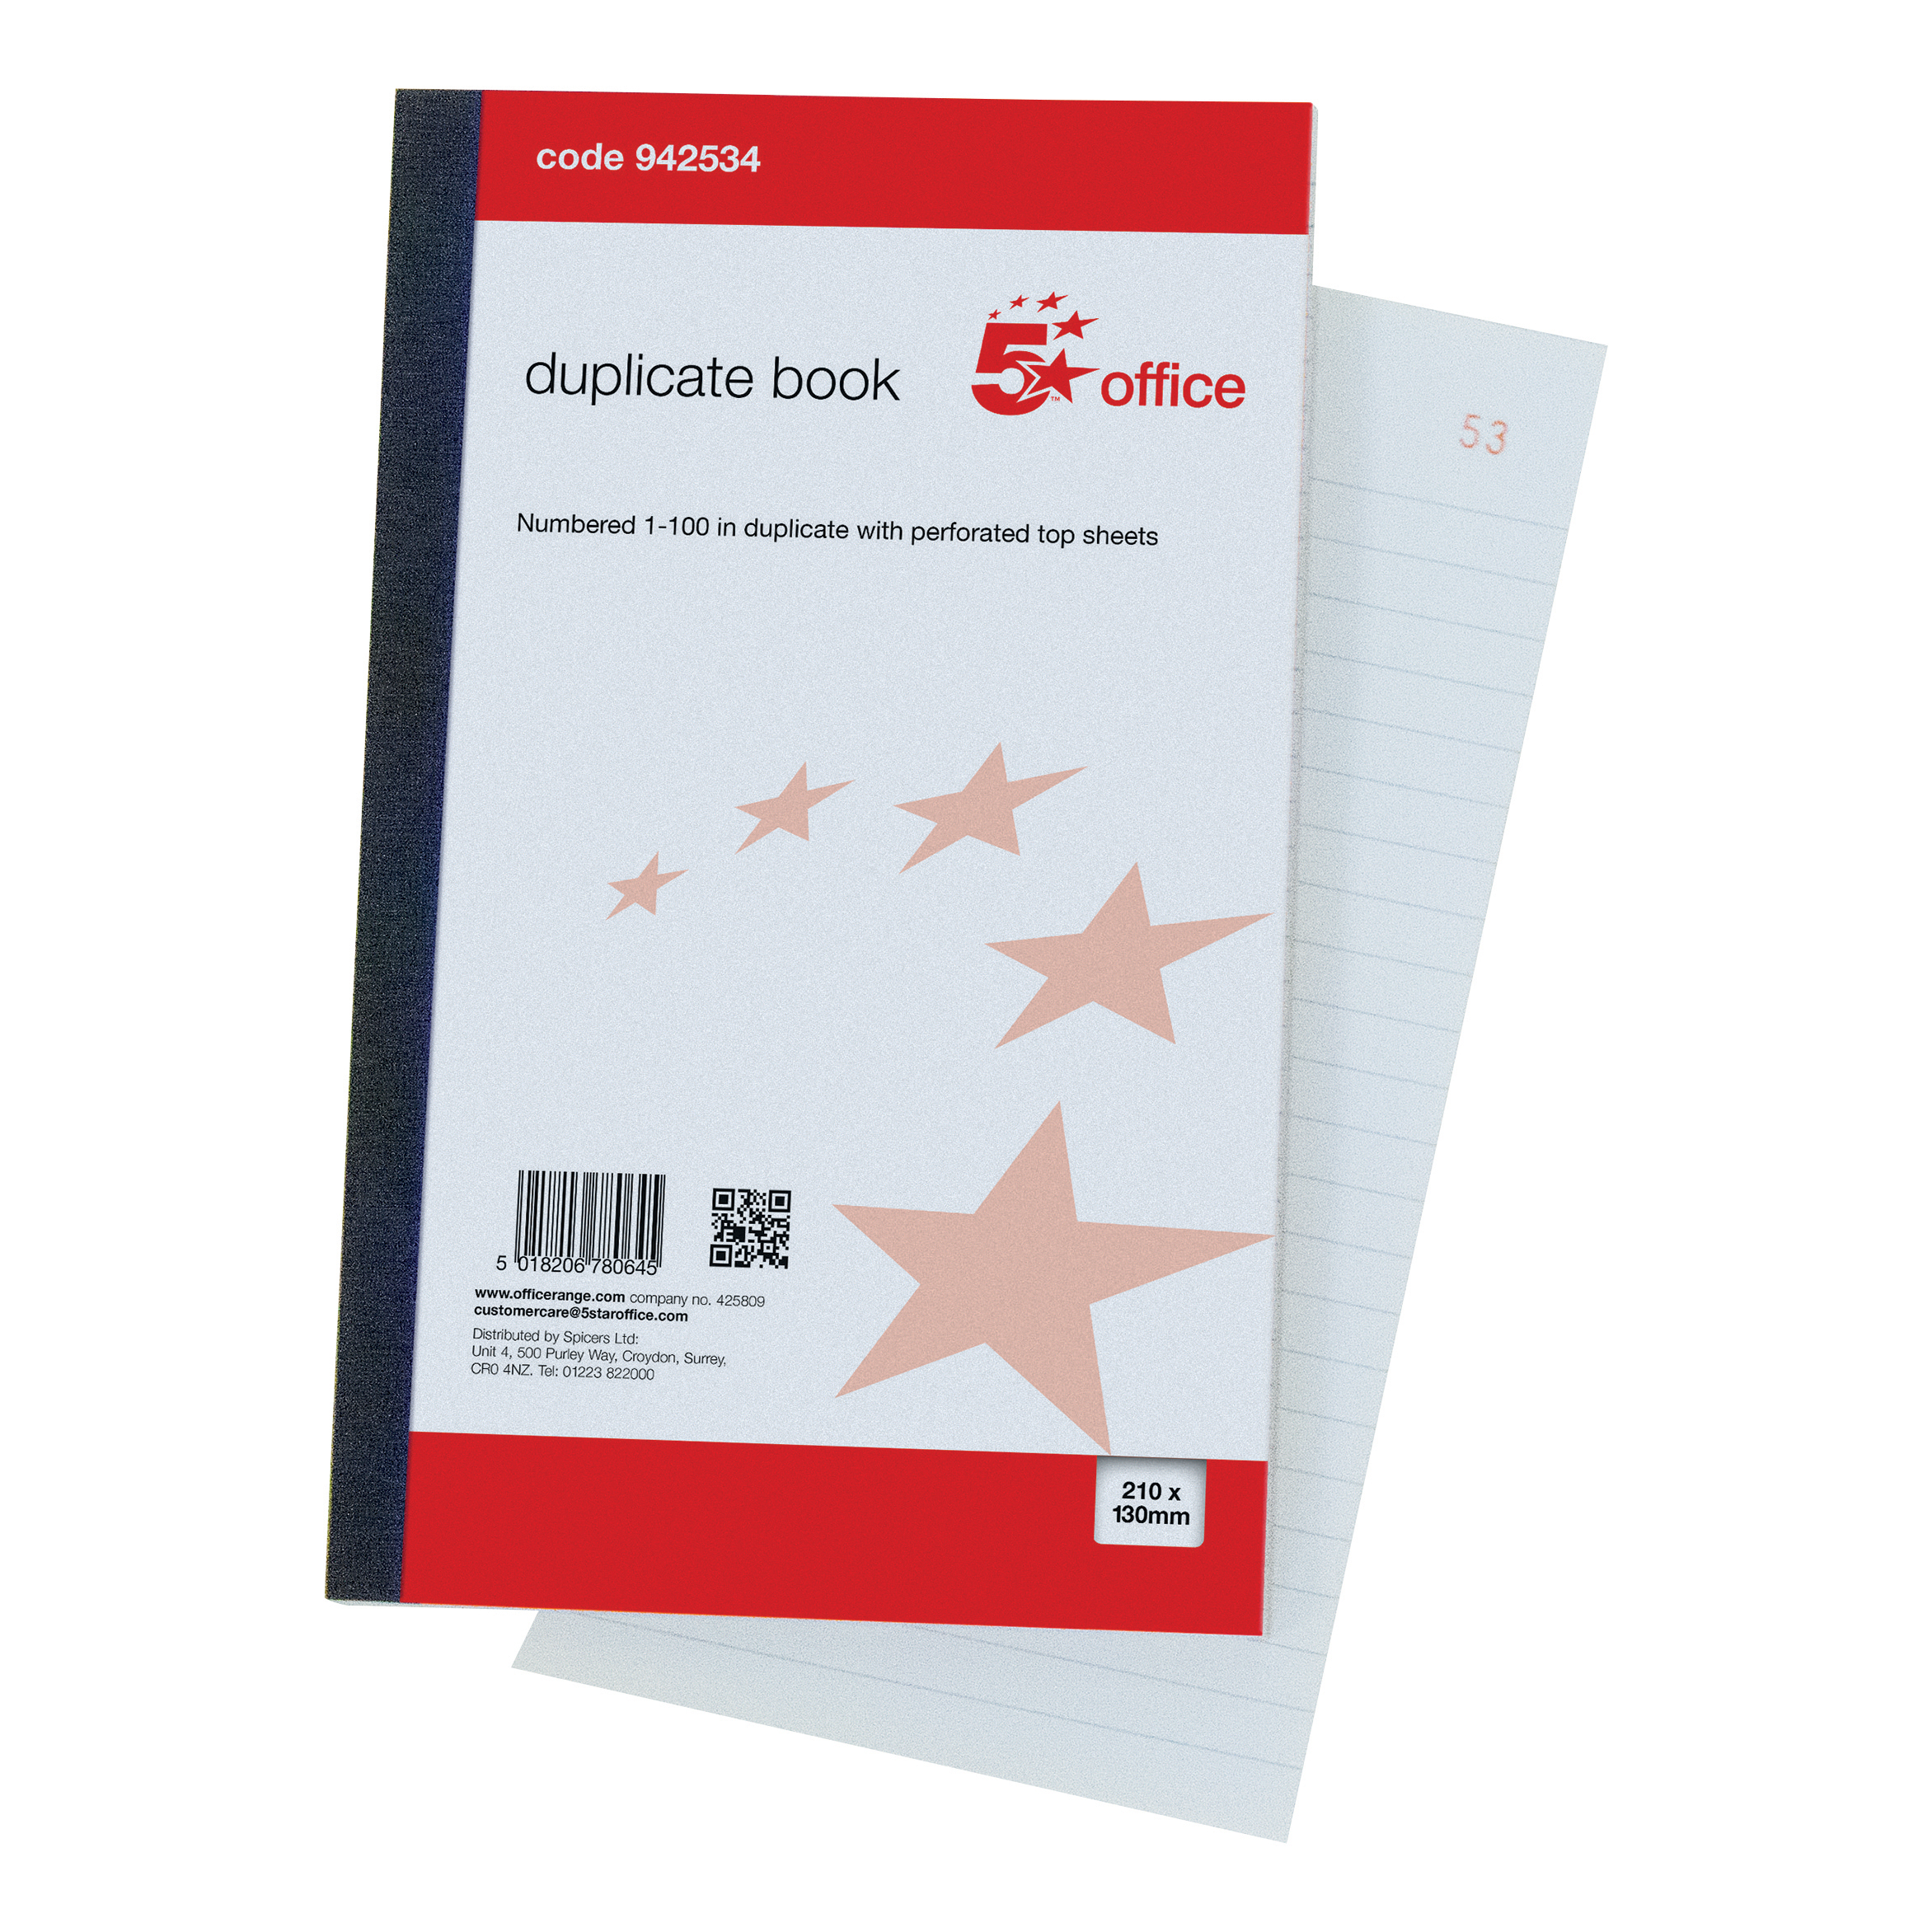 Duplicate 5 Star Office Duplicate Book with Carbon Ruled Indexed and Perforated 100 Sets 210x130mm